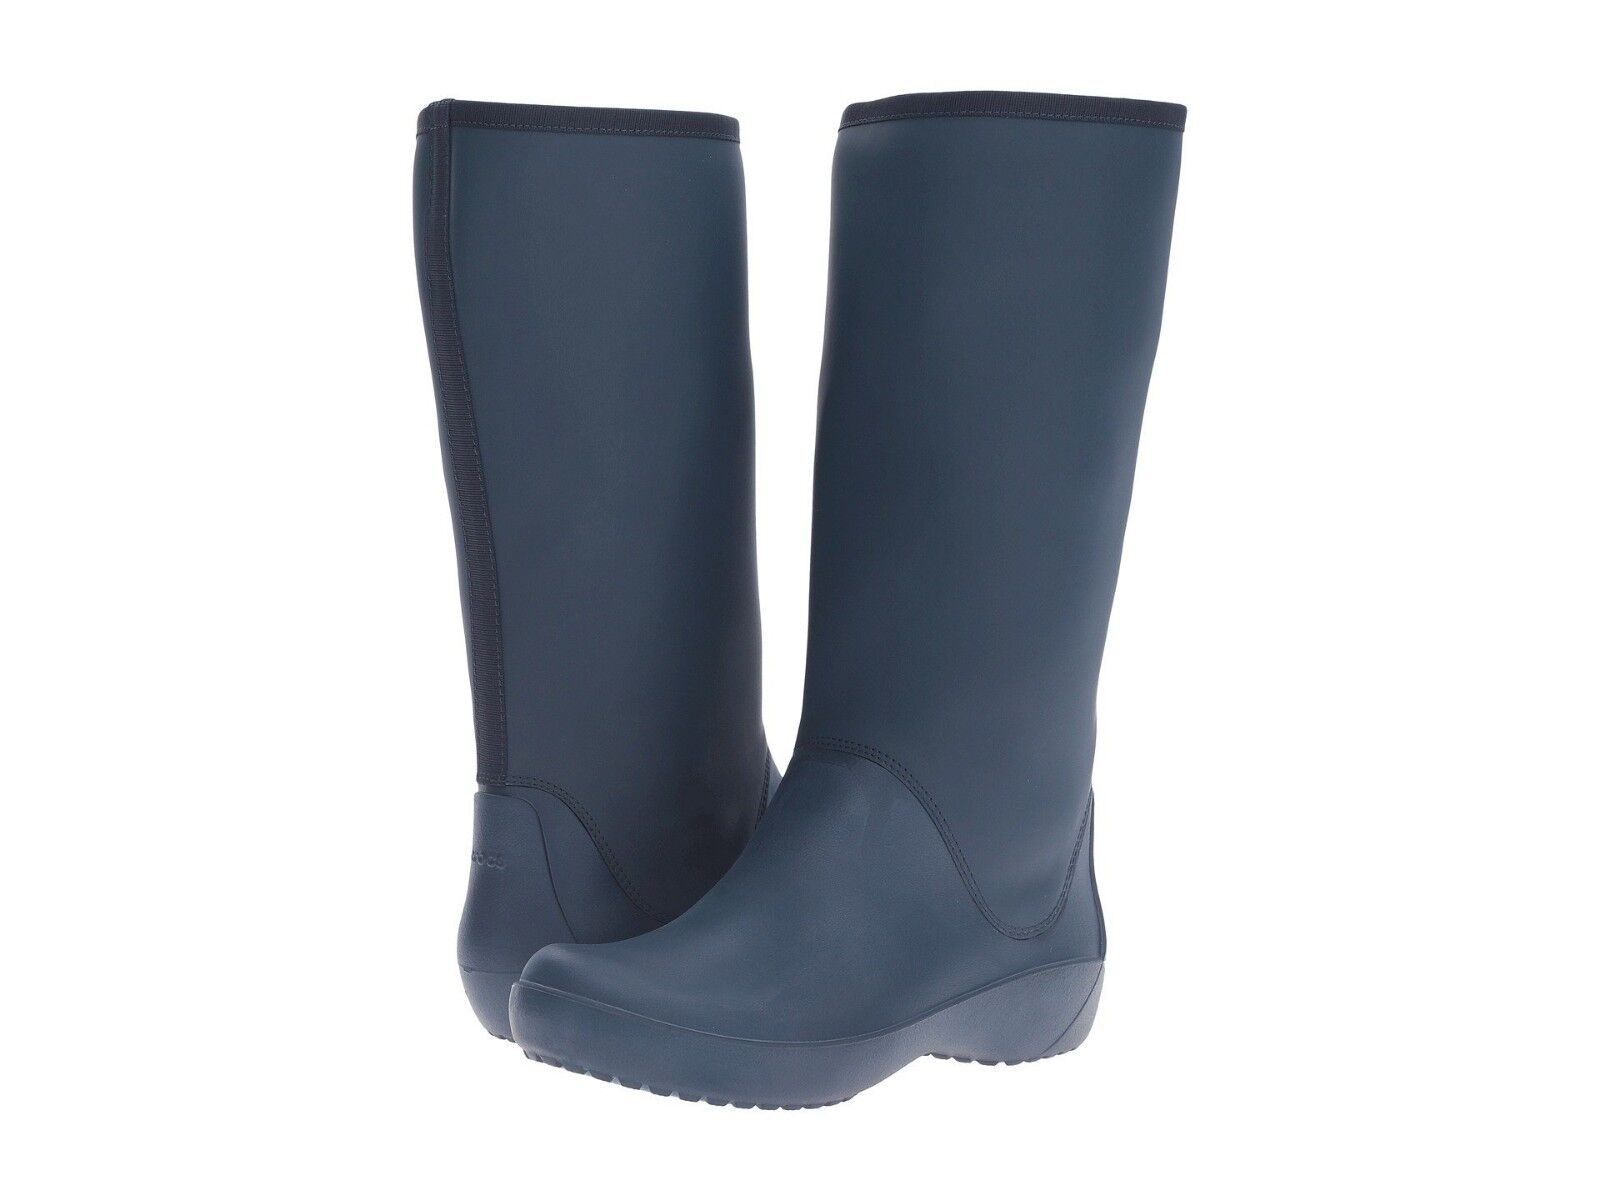 Crocs Womens Rain Floe Tall Boots Navy bluee Sz 7 7 7 New In Box 324fe6